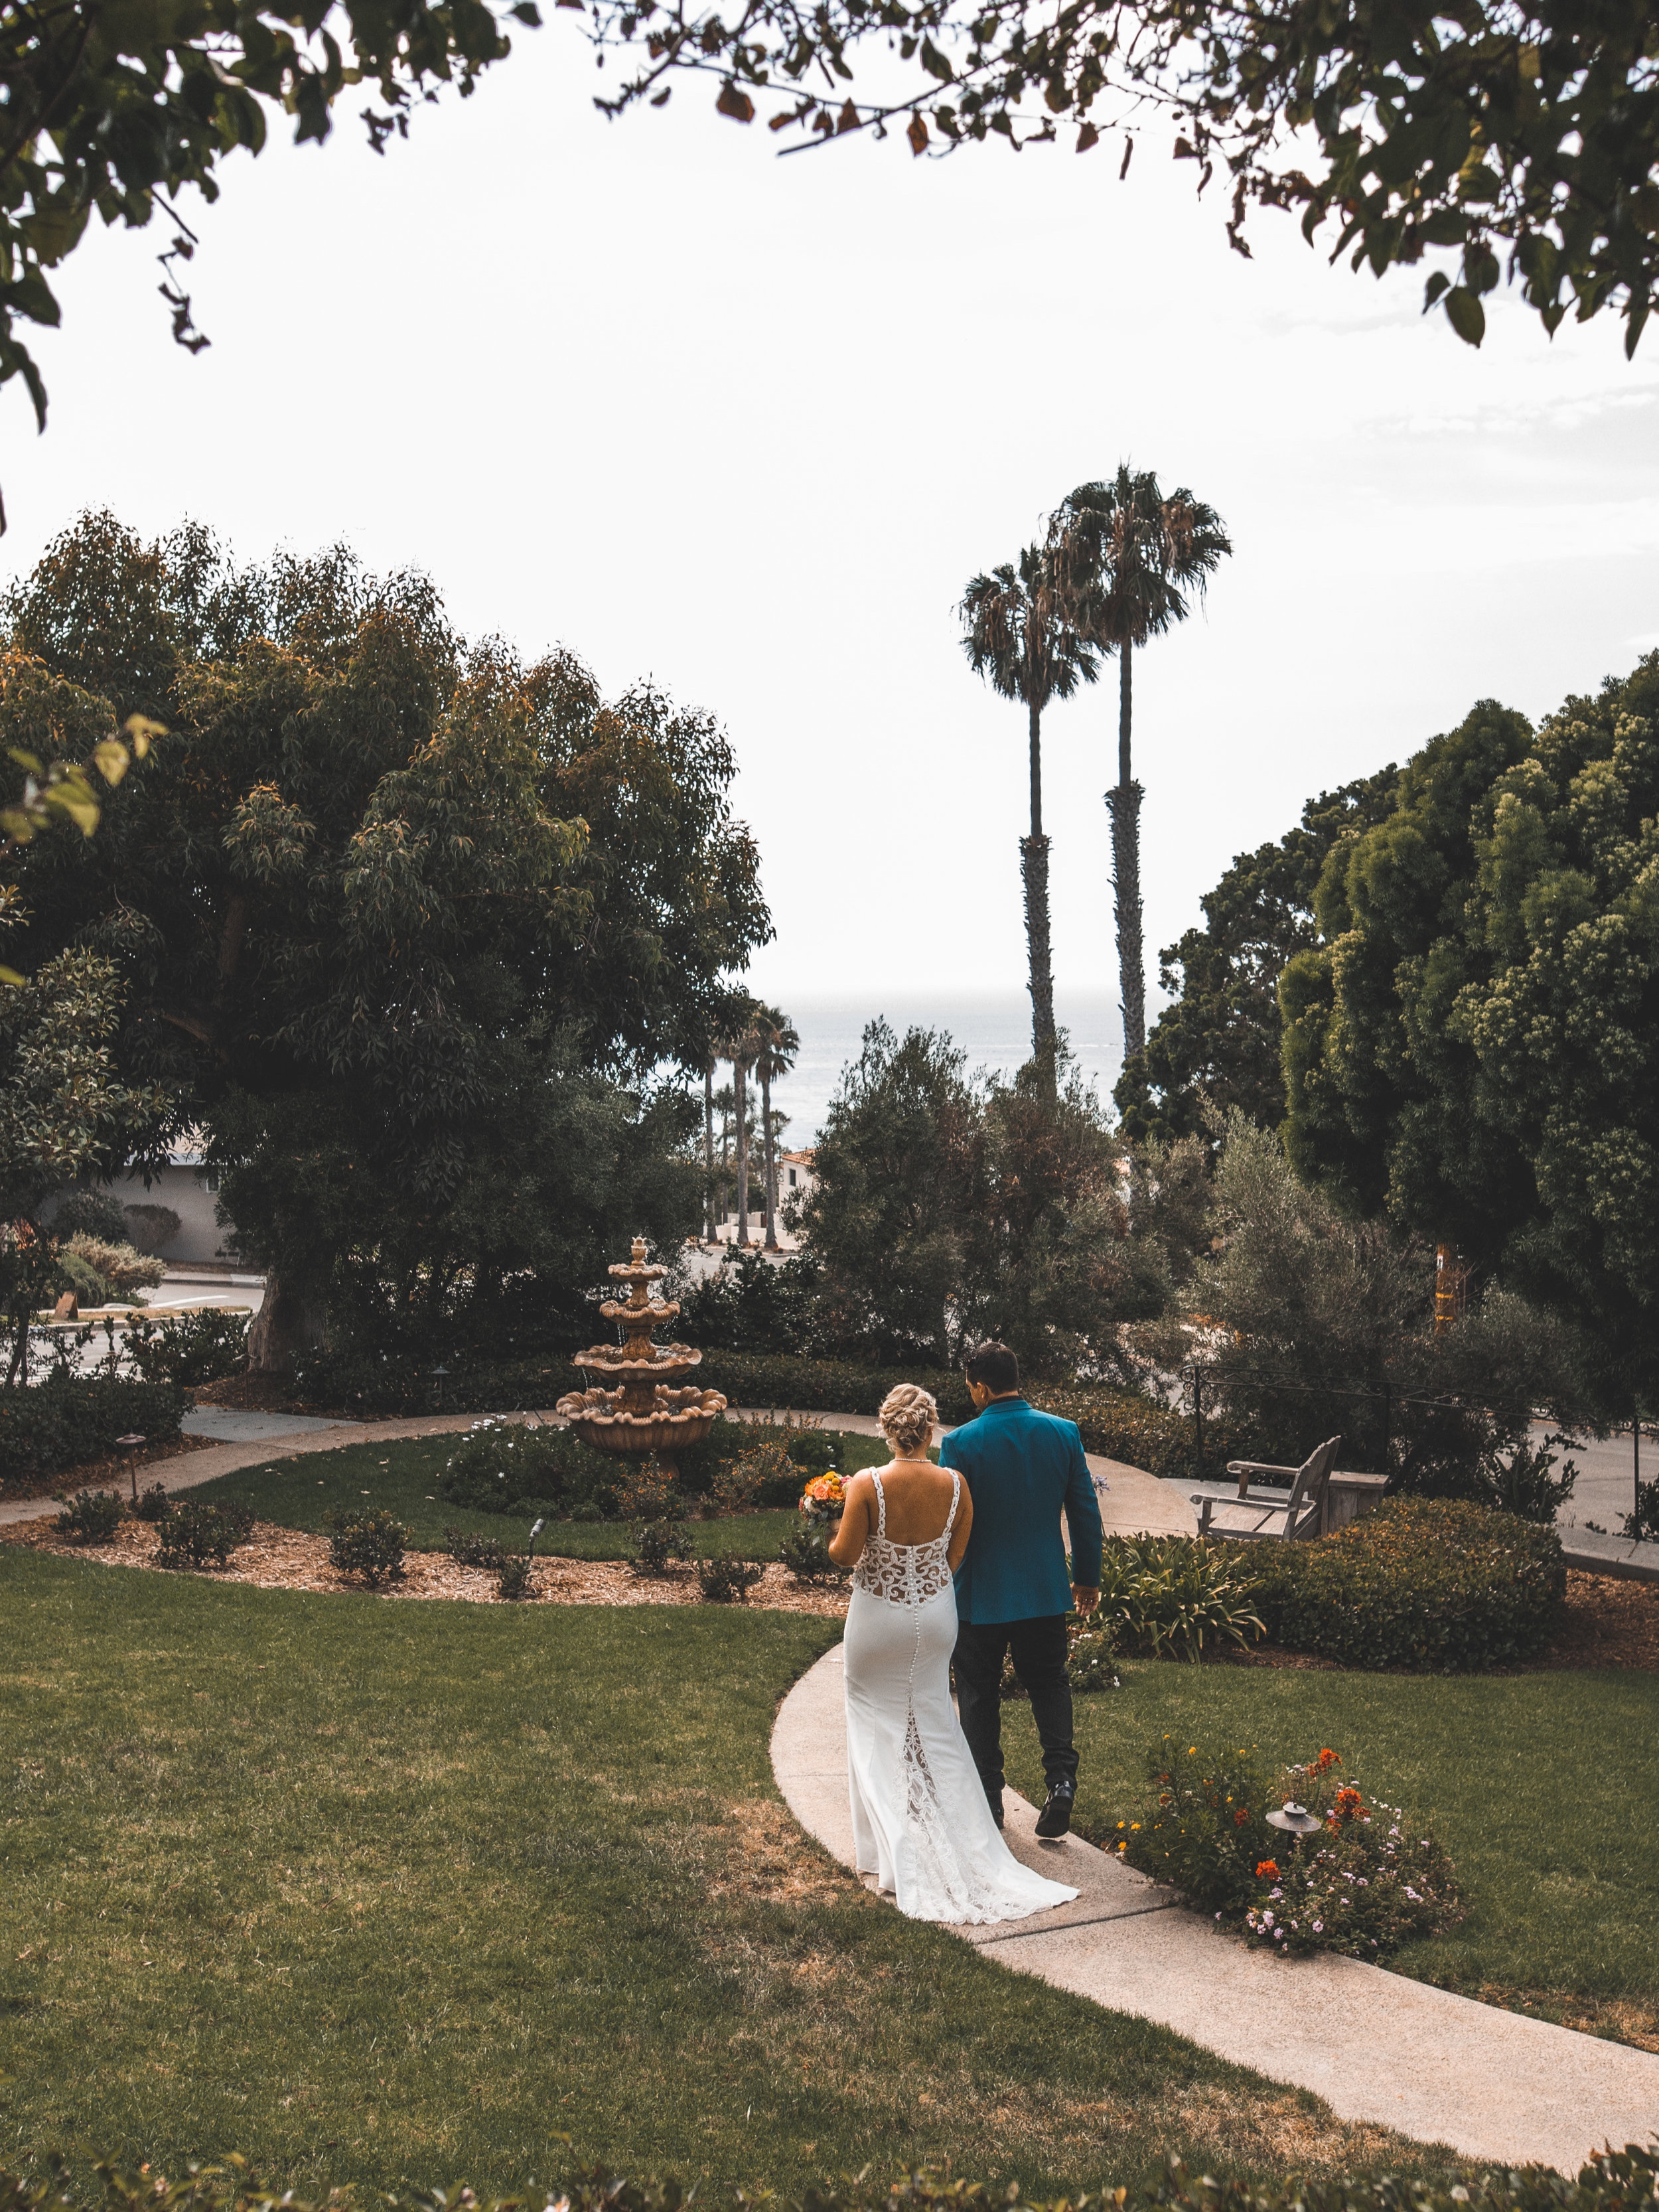 Weddings - We understand that this is your special day. We also understand this is a day that you will want to relive and share with your kids. We carefully craft a beautiful wedding film to share for generations.